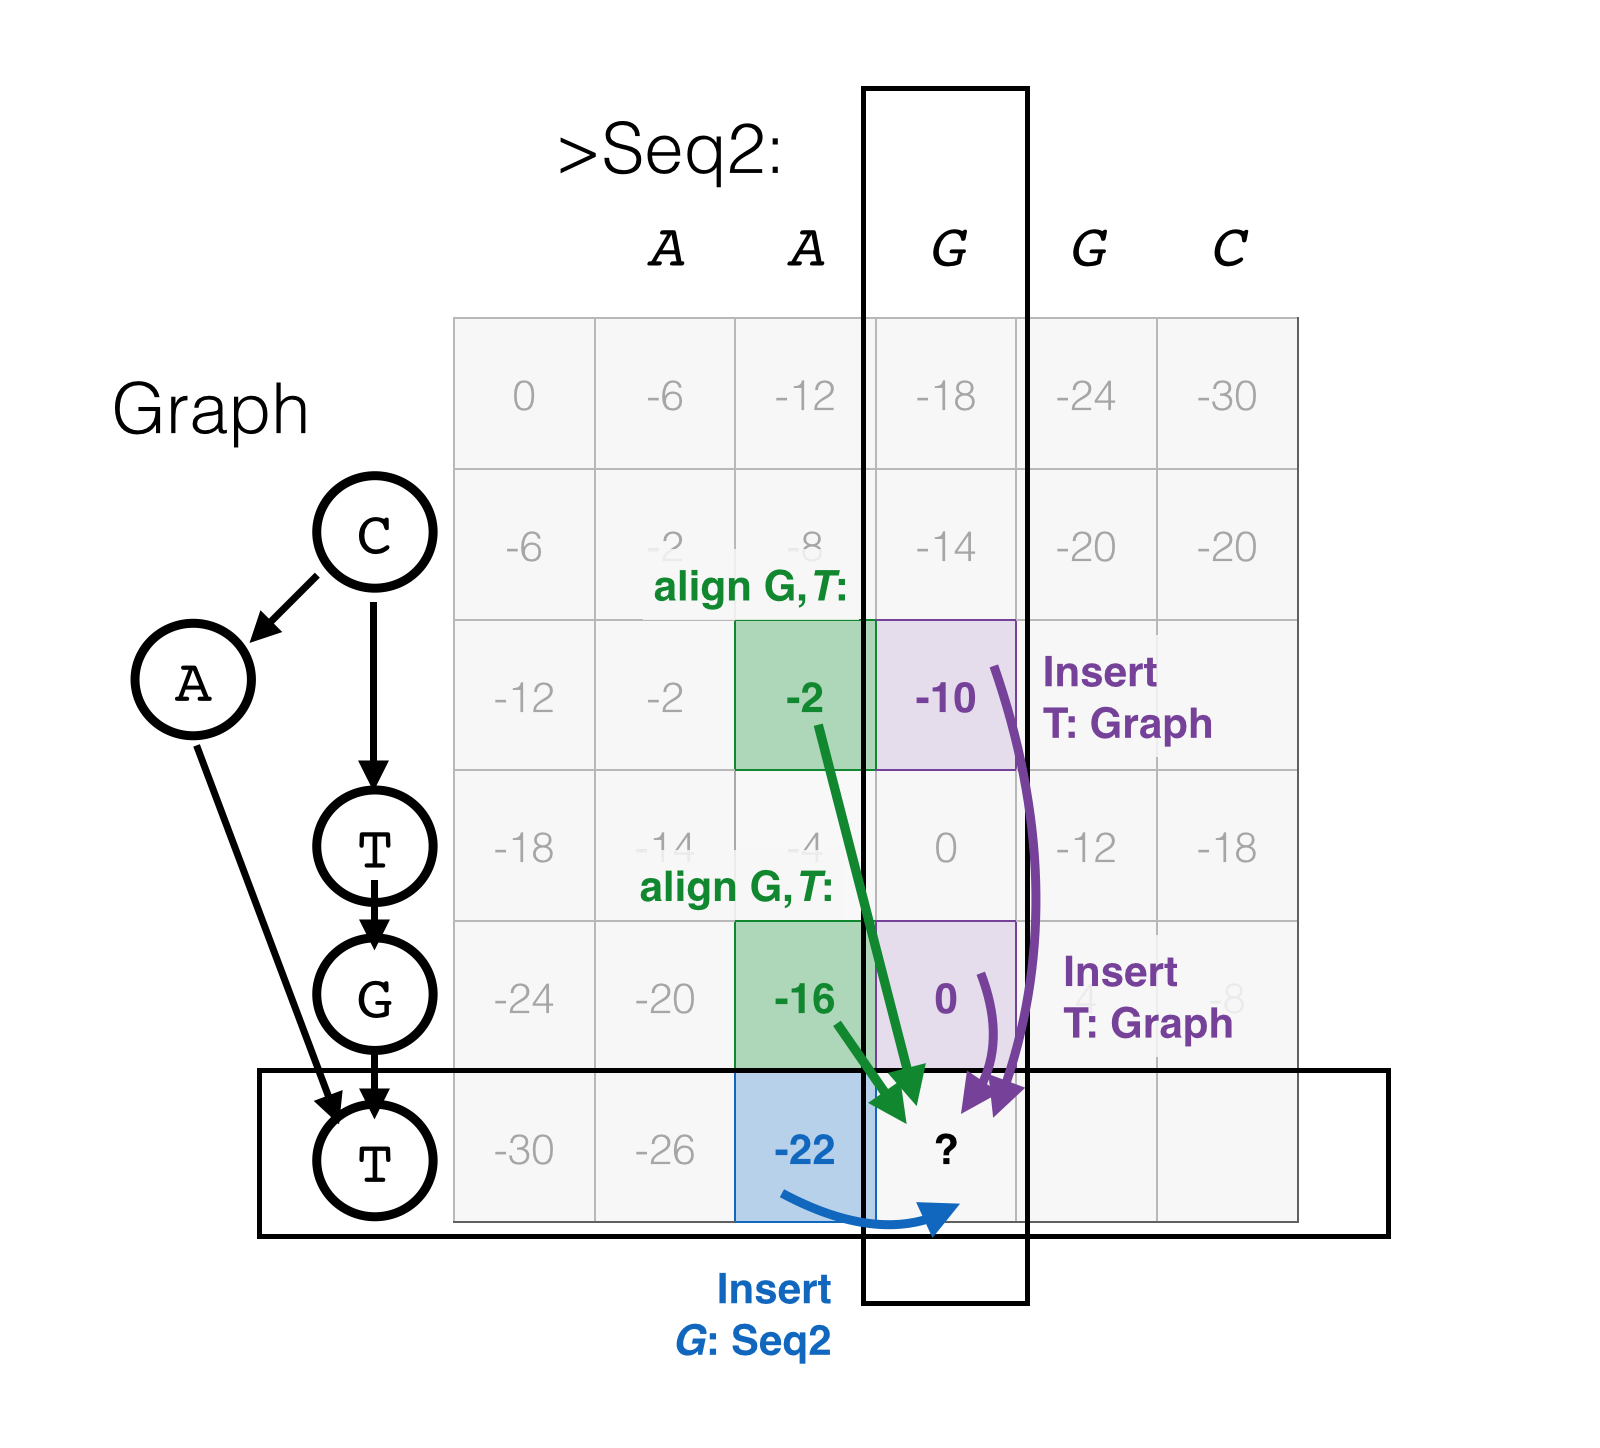 Dynamic programming for graph-string alignment